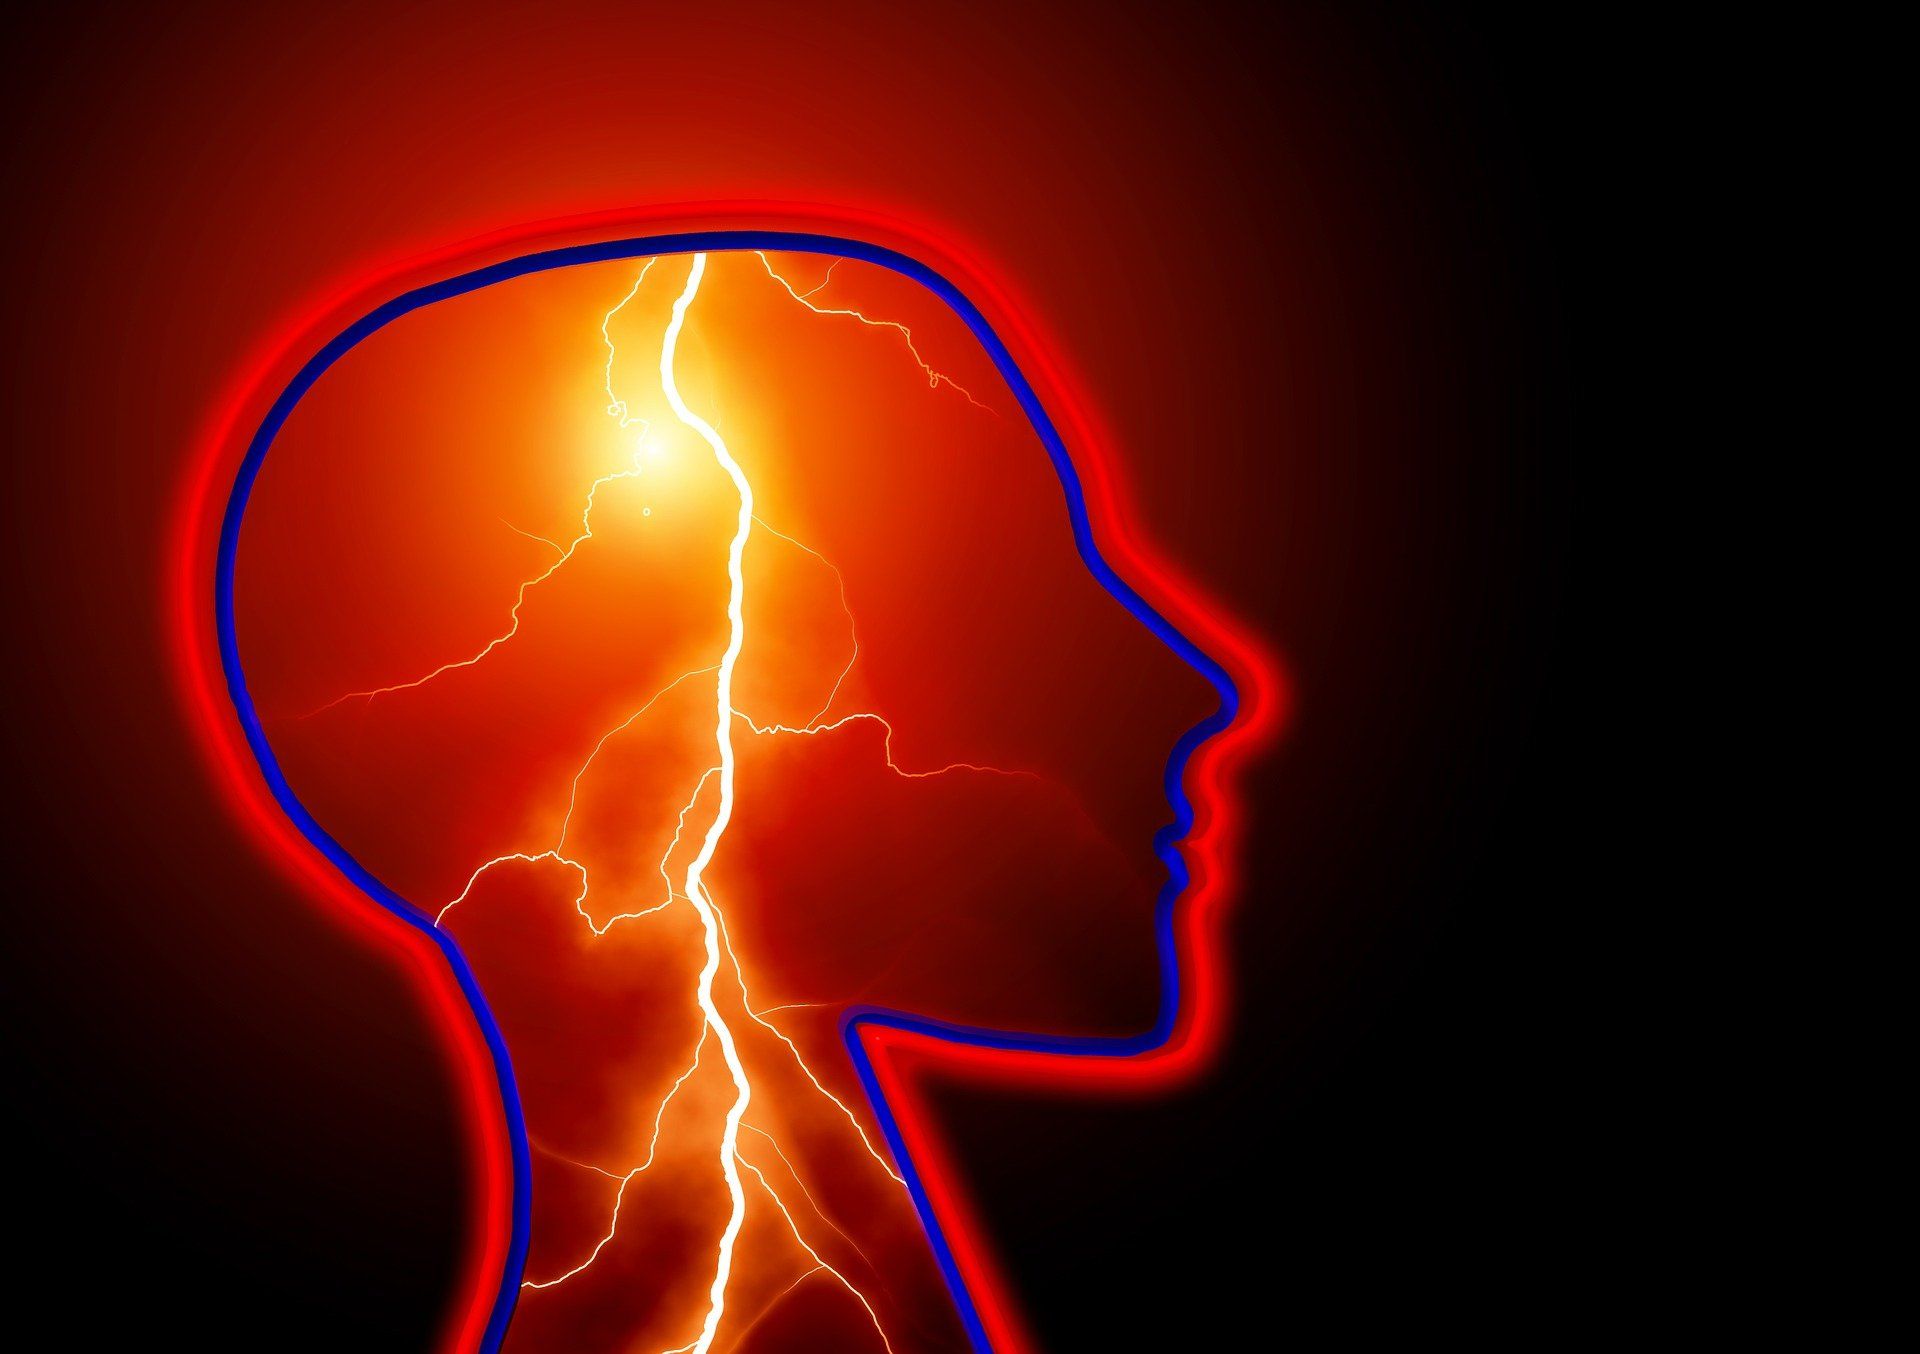 Repeated febrile convulsions linked to epilepsy and psychiatric disorders